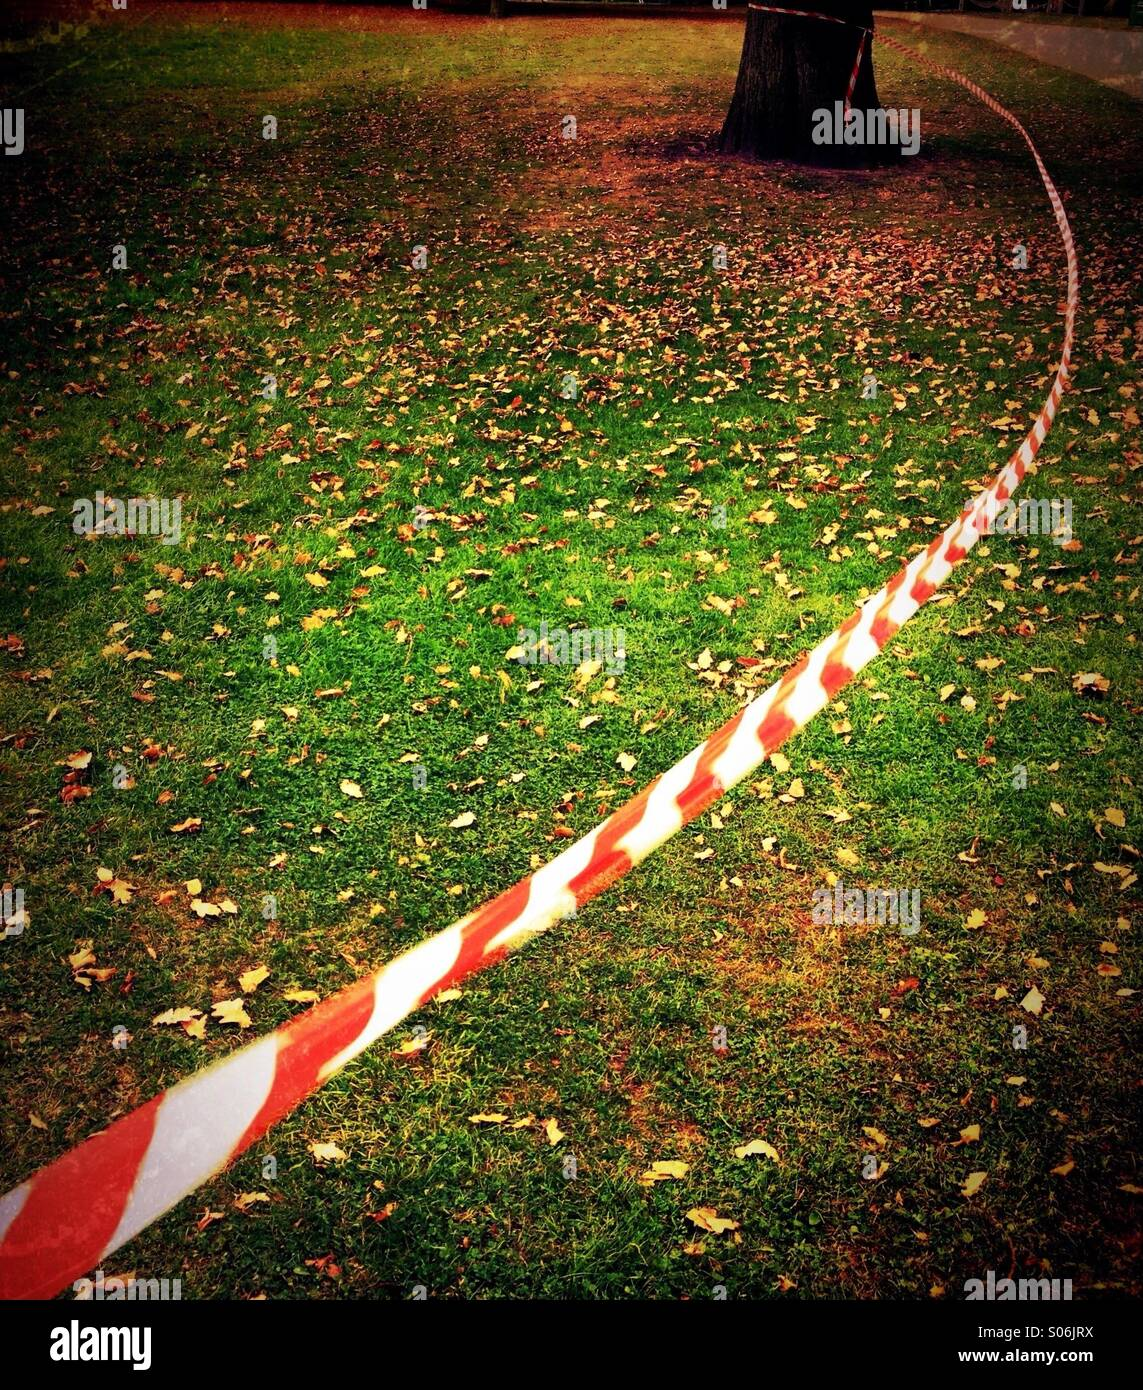 Marché rouge et blanc tape blowing in wind Photo Stock